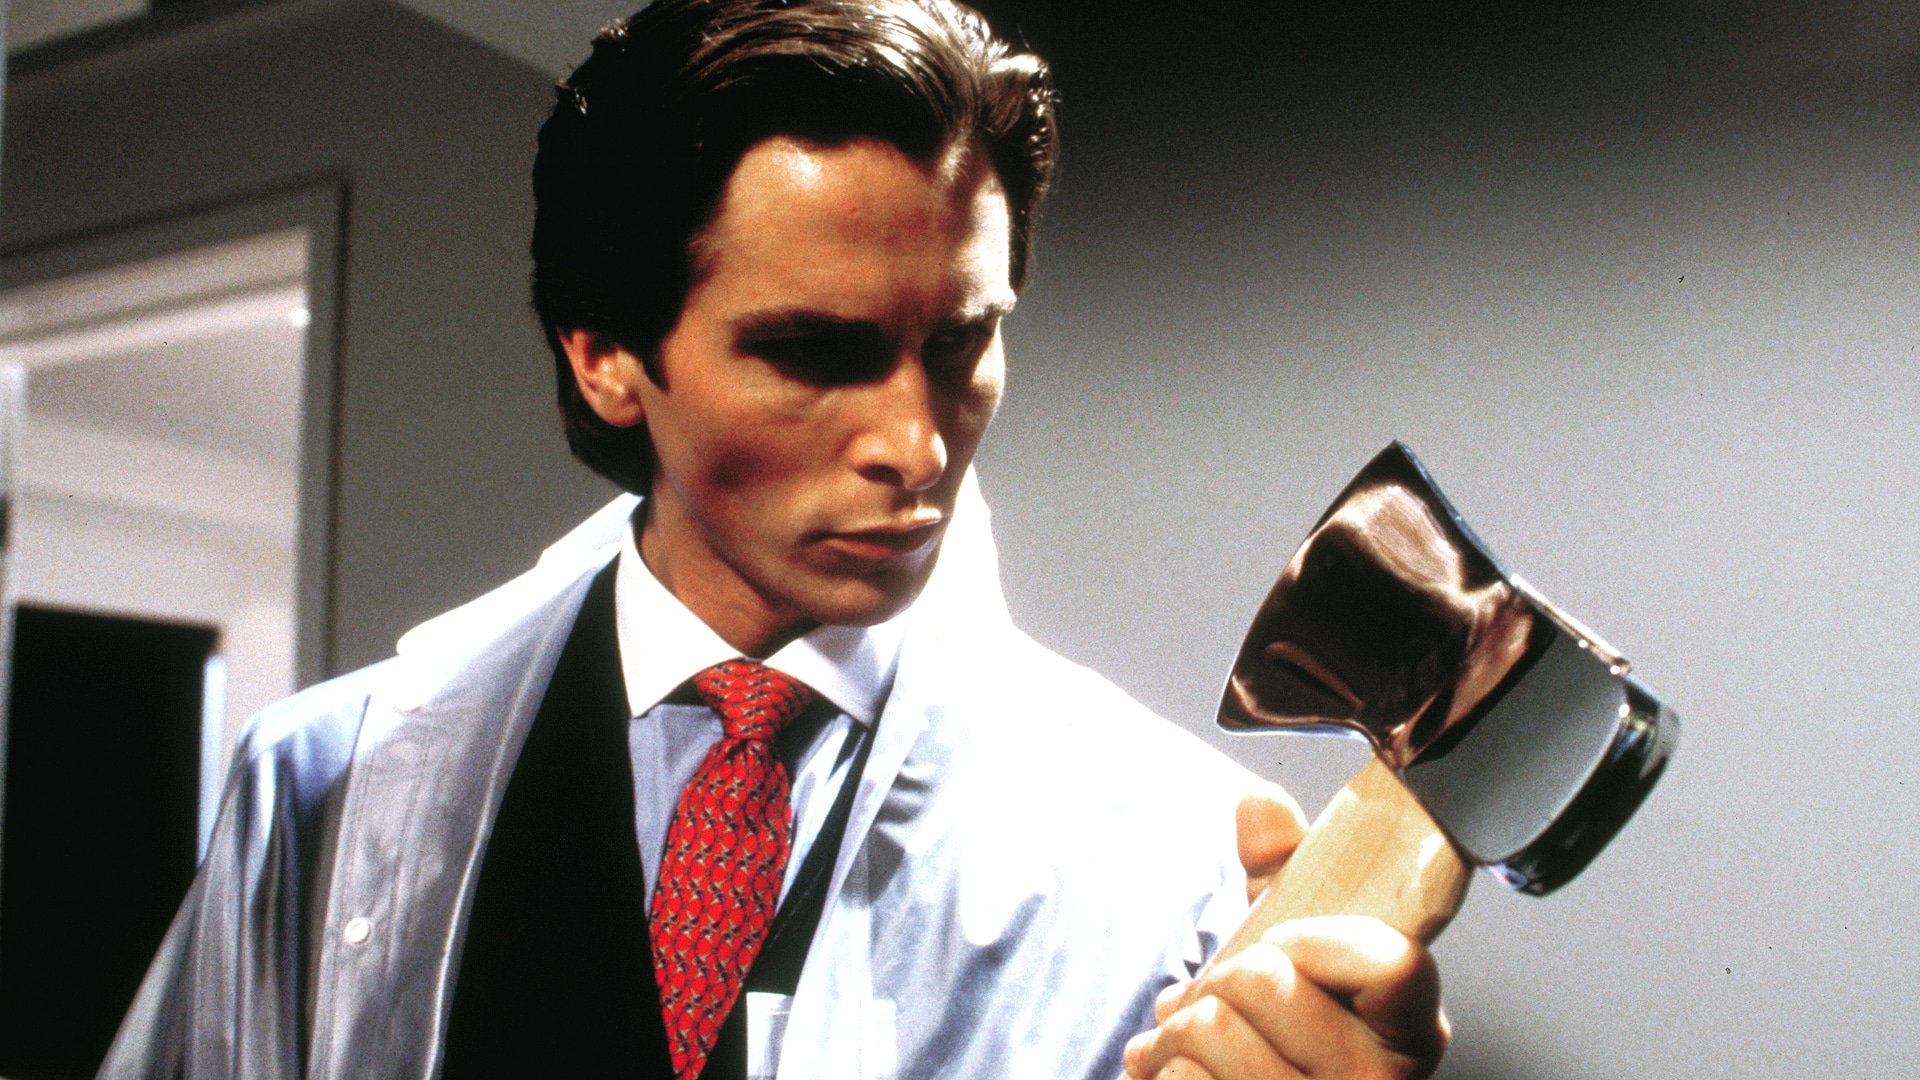 AMERICAN PSYCHO APPEARS IN ADAPTATION - THE IMPOSSIBLE FILMS